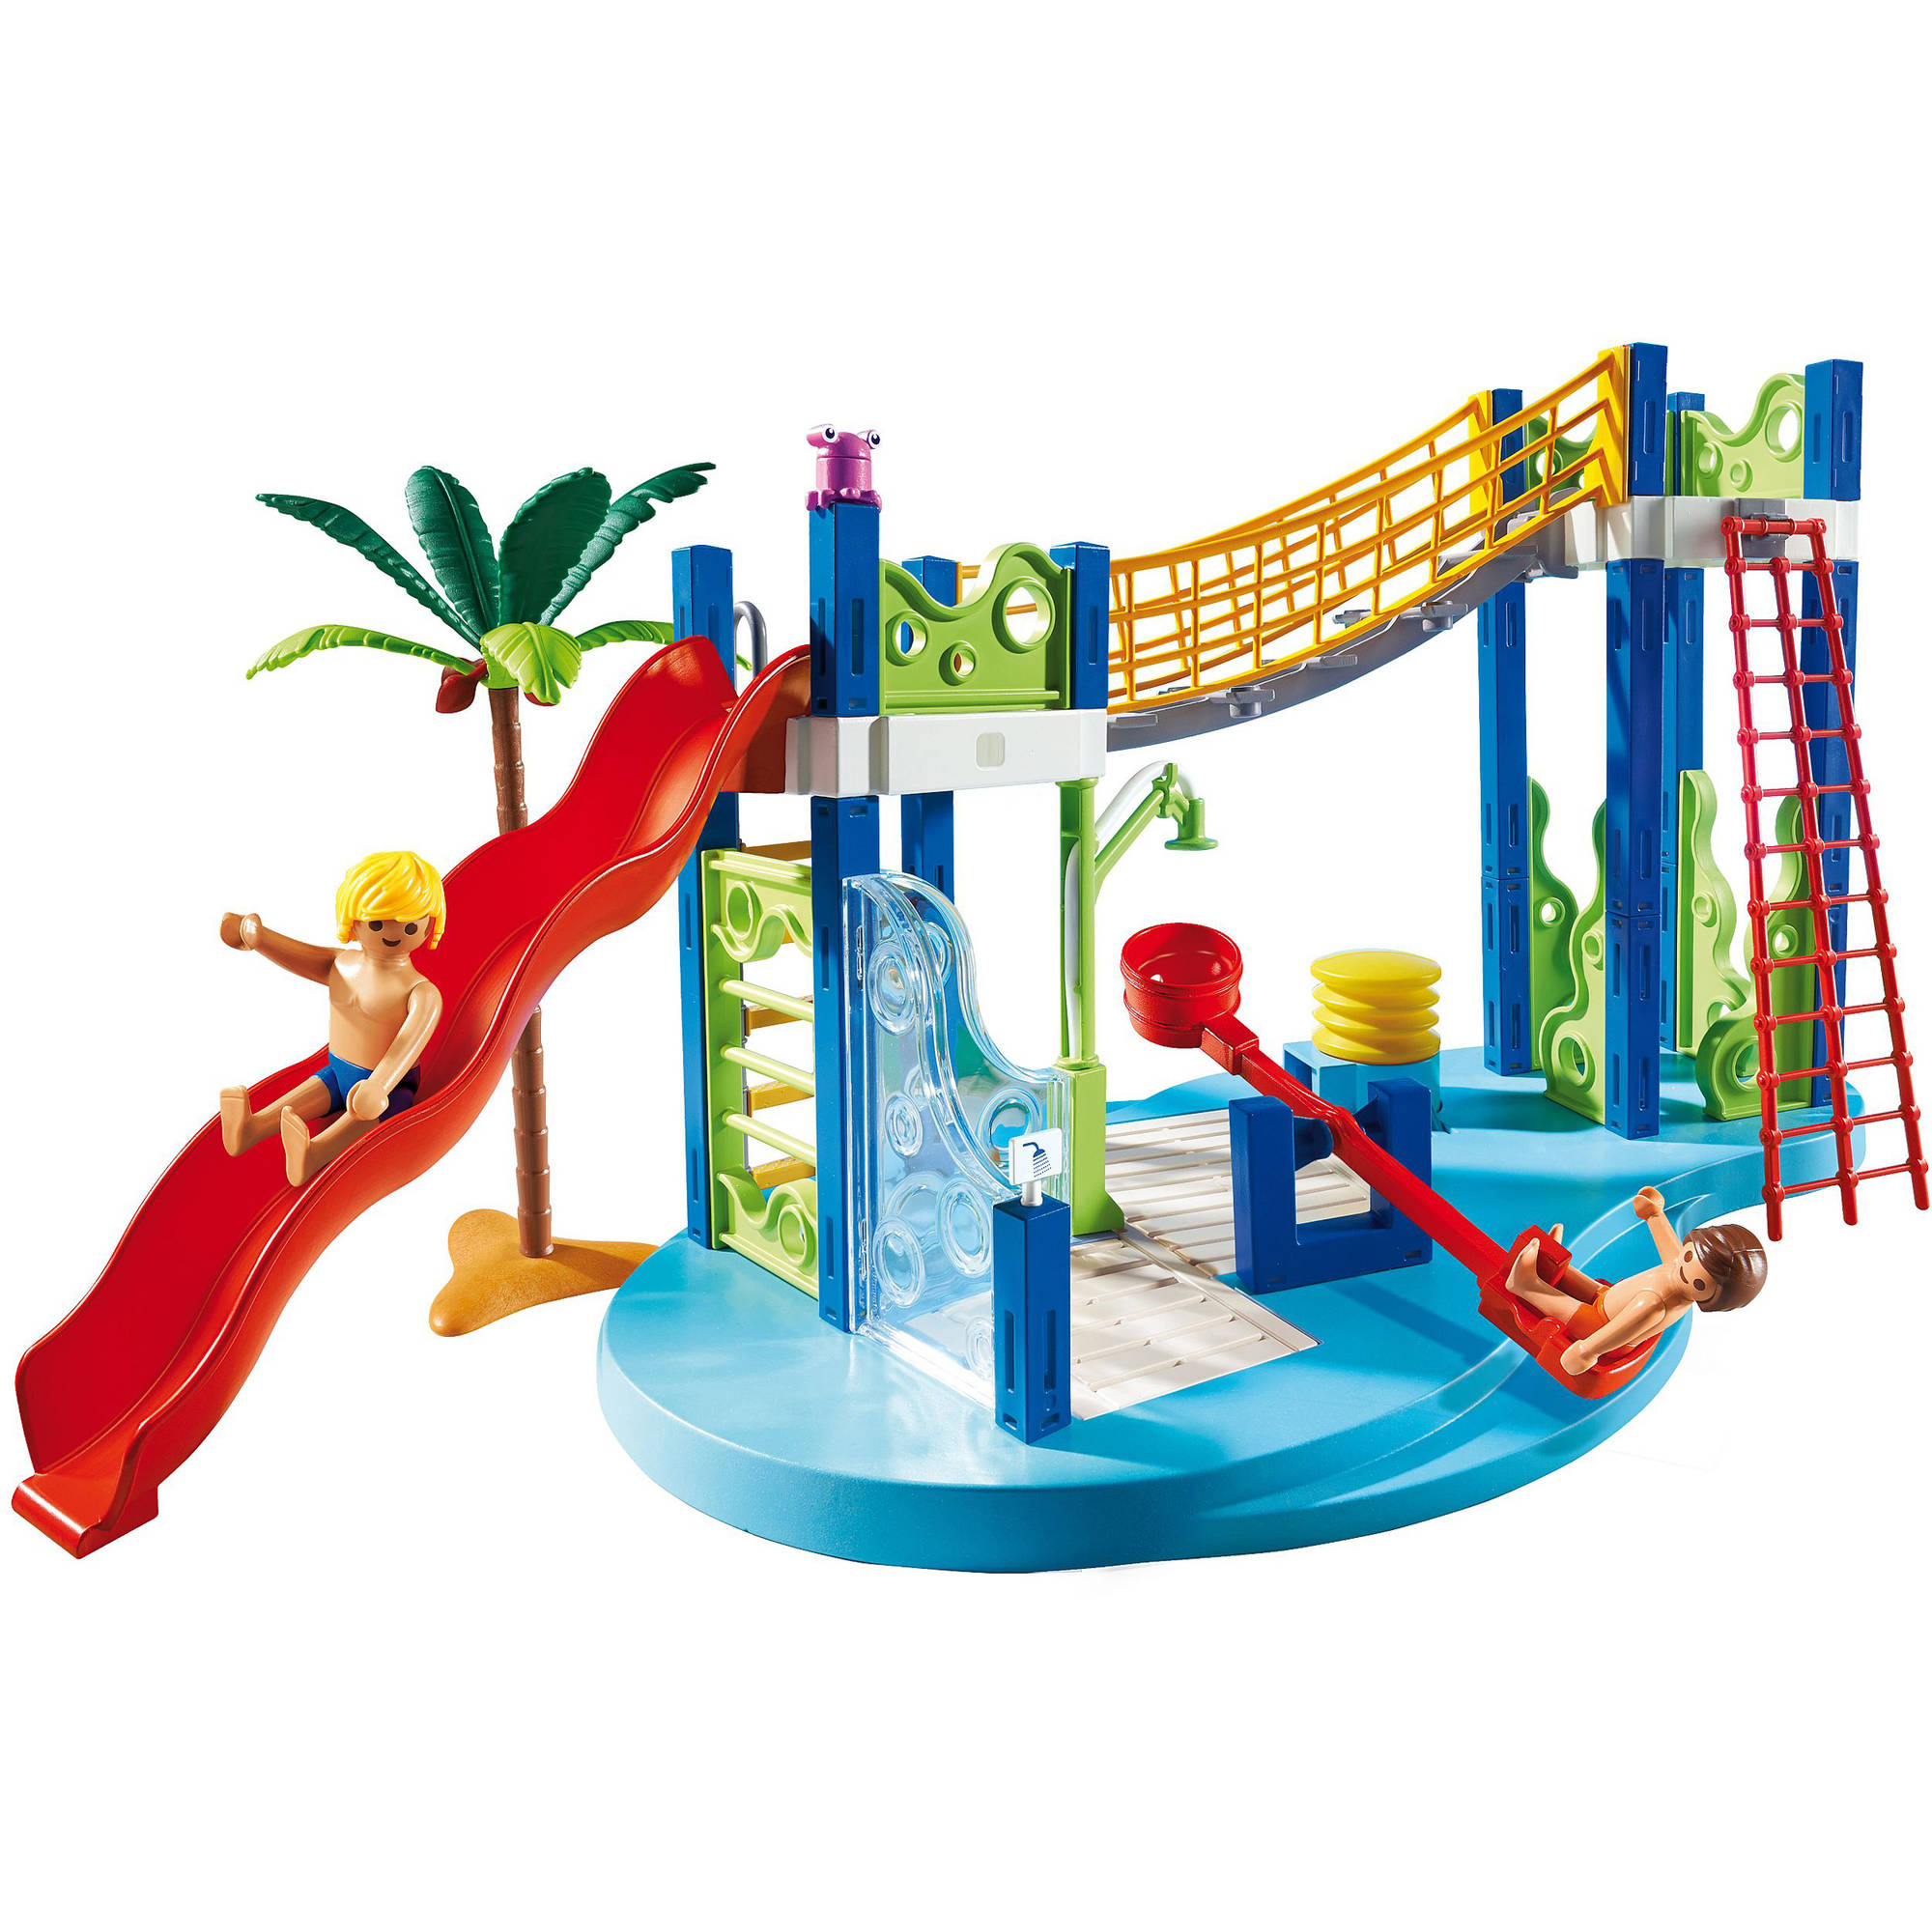 PLAYMOBIL Baby Pool With Slide Playset   Walmart.com